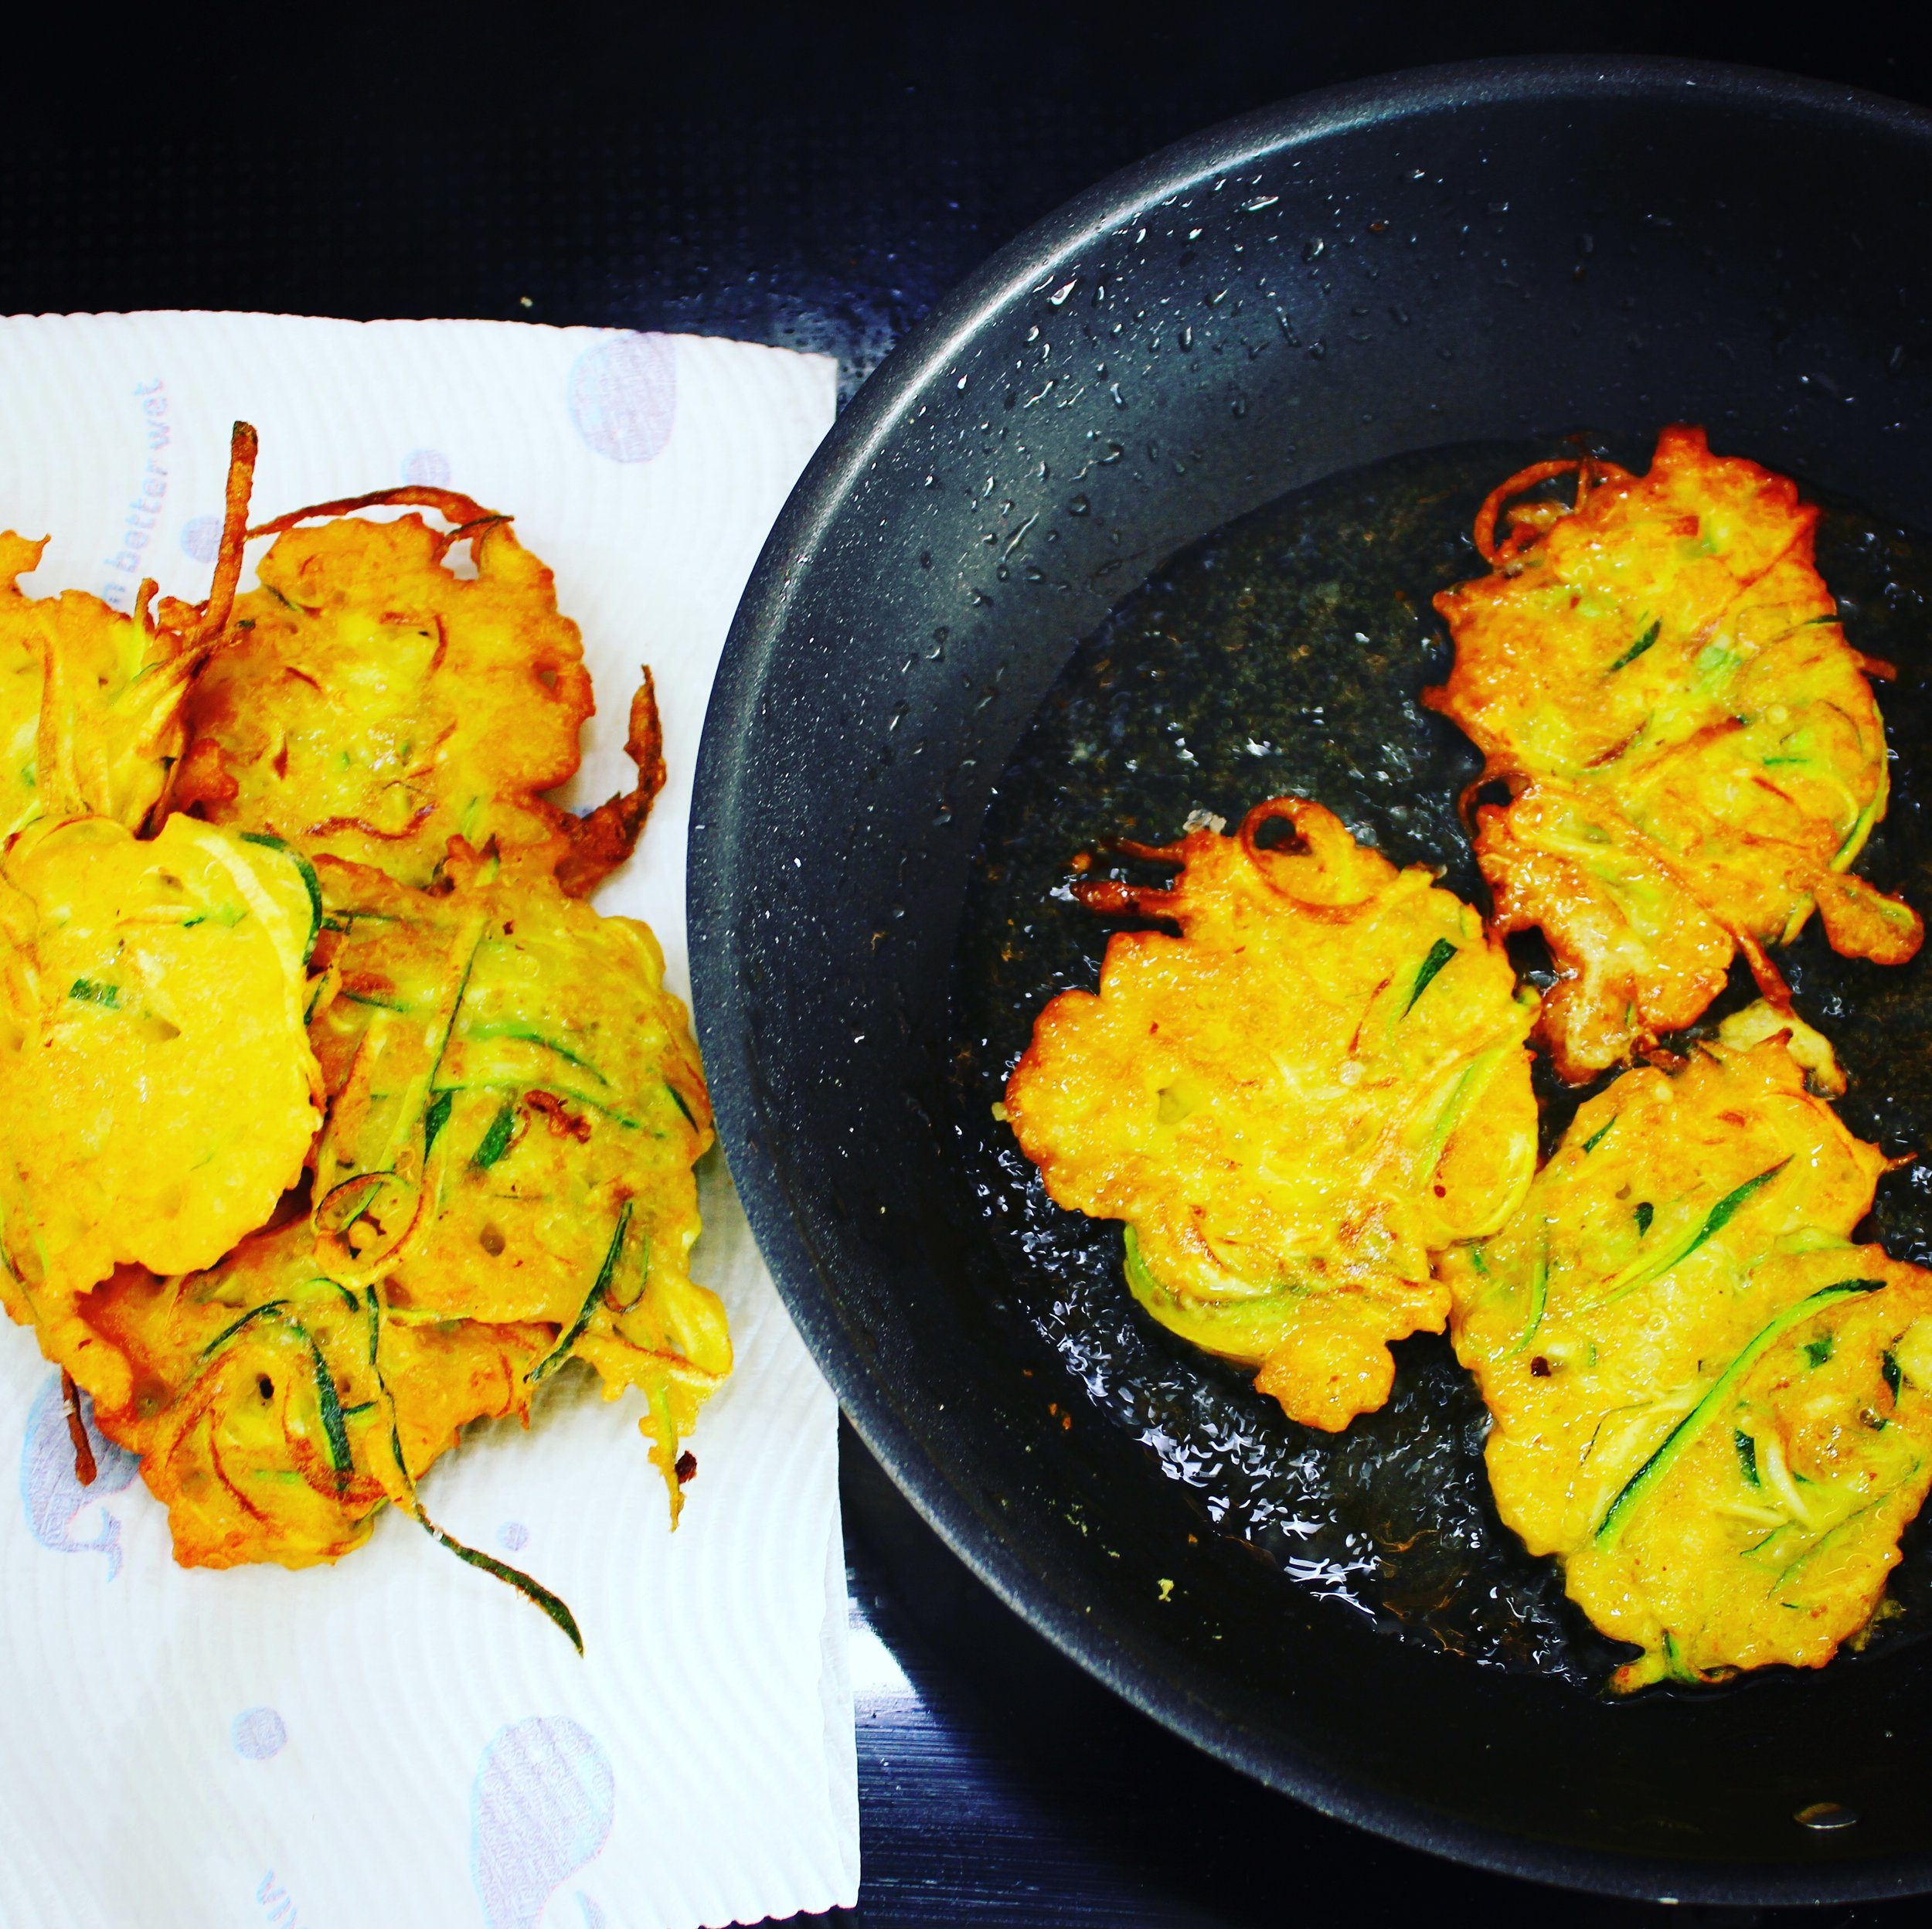 quinoa, chickpea and zucchini fritters, yes they are fried! but delicious recipe soon @plantbasedchef  #glutenfree  #vegan  #veganfood  #veganrecipes  #veganfoodporn  #veganfoodlover  #veganfoodshare  #vegetarian  #plantfood  #howtocookplants  #plantbased  #plantbasedchef  #sydney  #healthyfood  #healthyrecipes  #quinoa